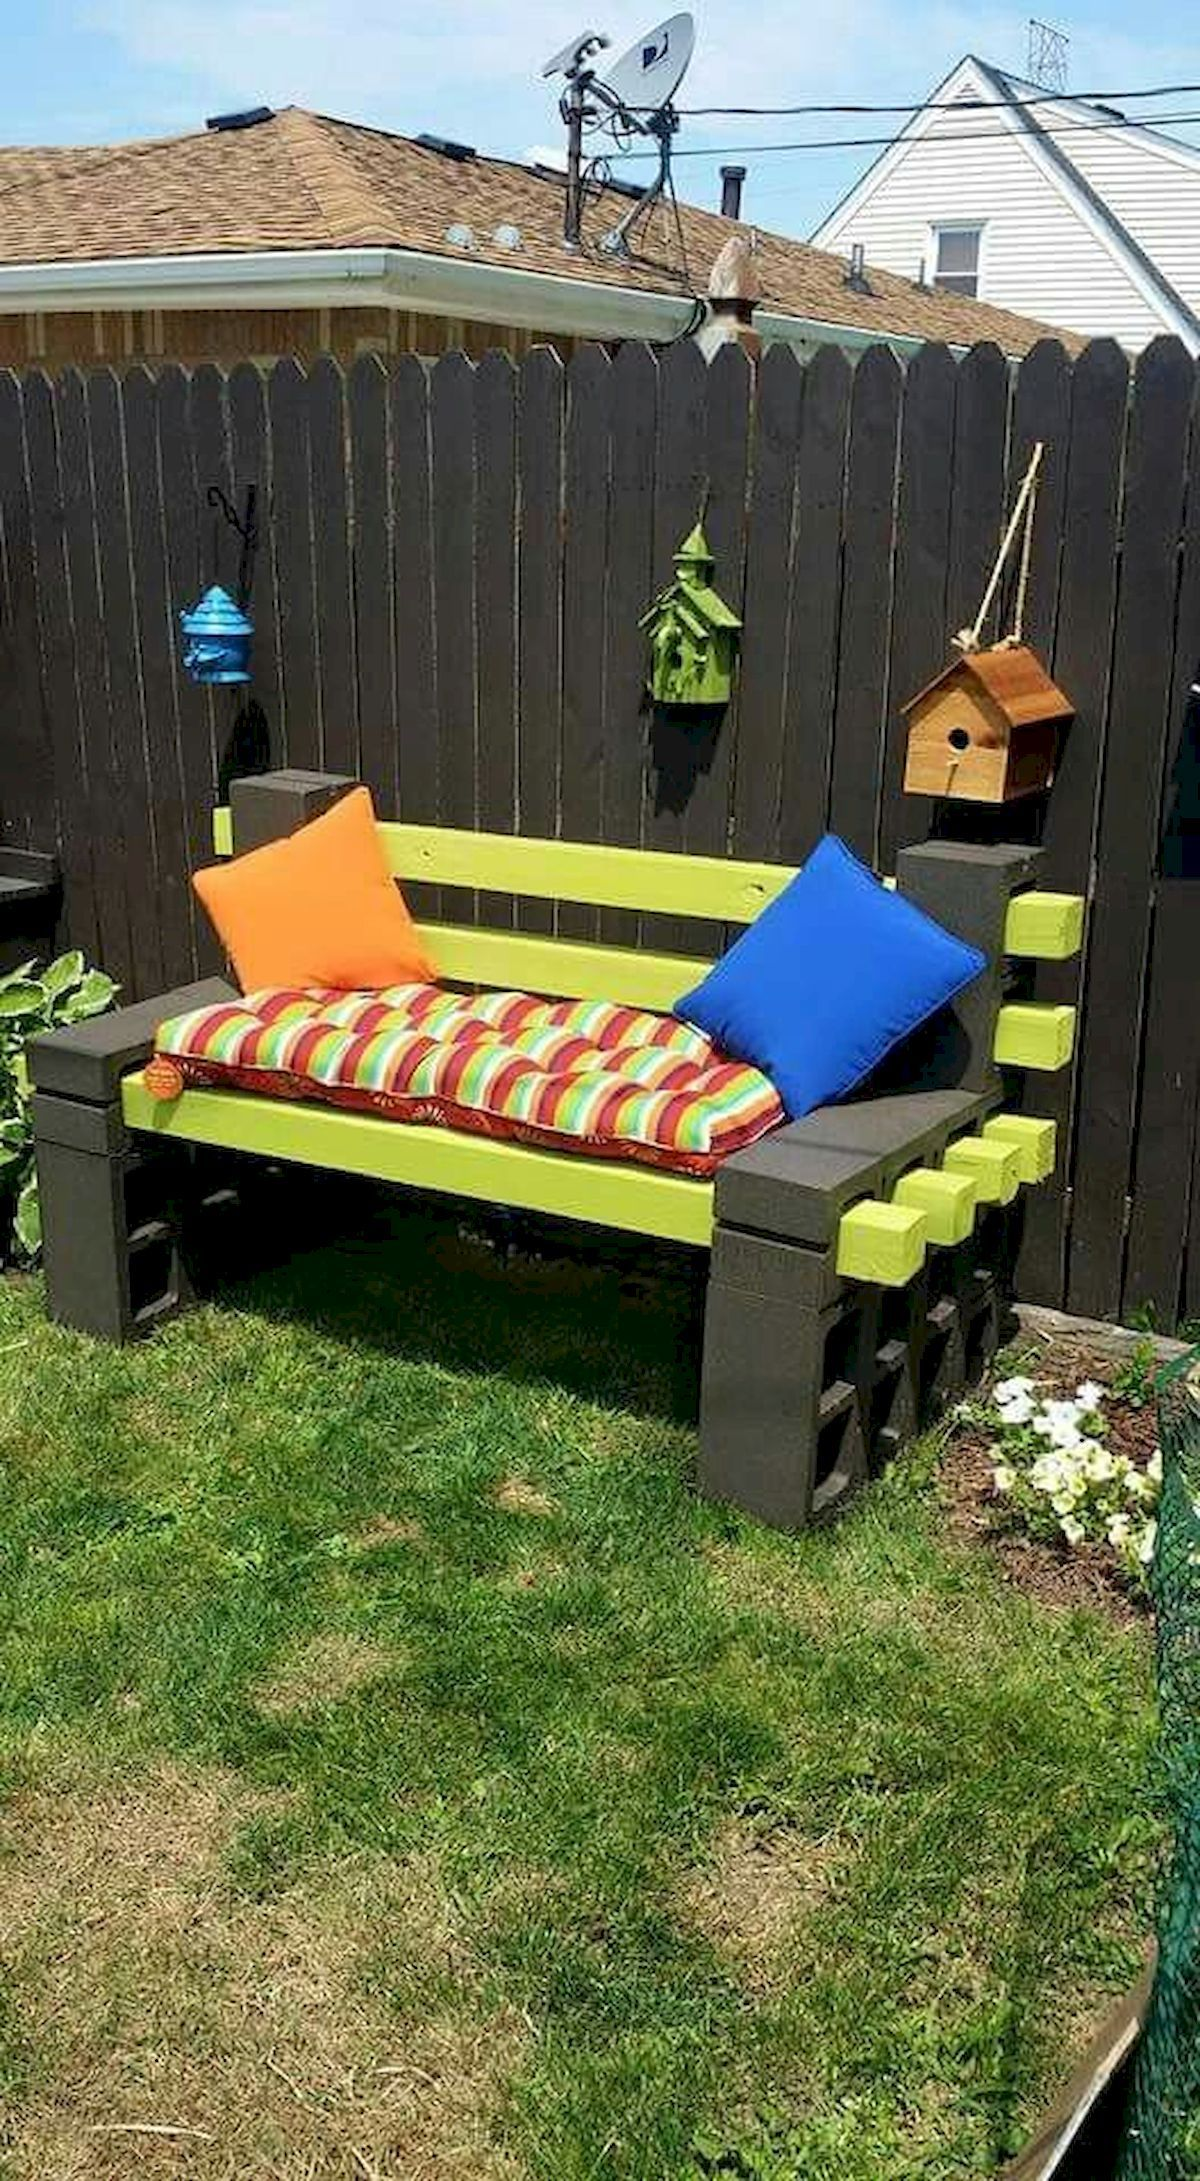 Diy Cinder Block Furniture Designs Patio Diy Mobilier De Parpaing Mobilier Exterieur Diy